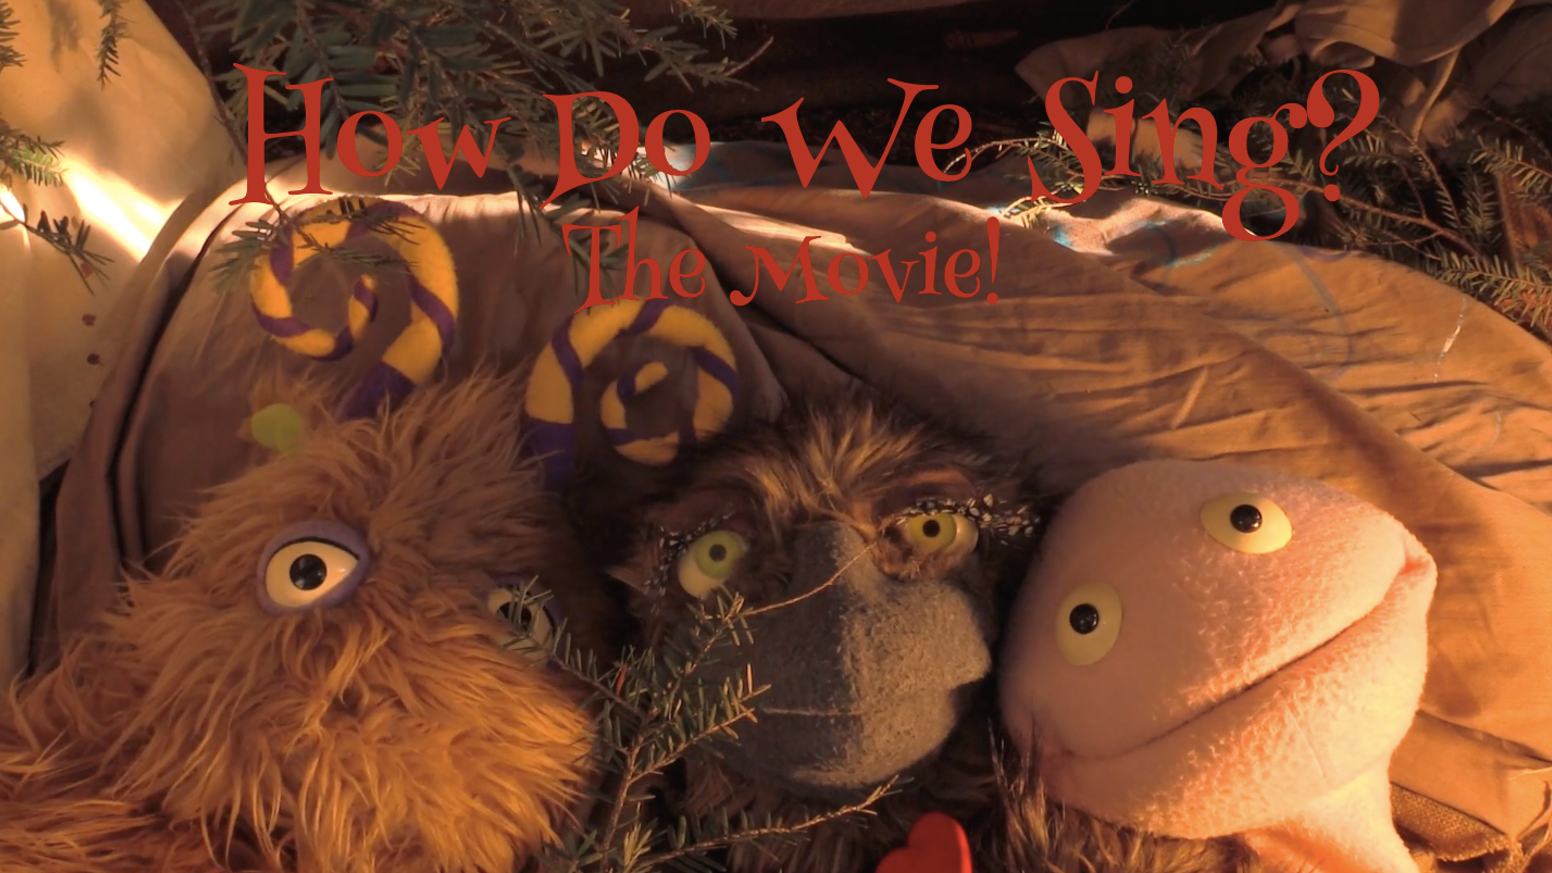 A puppet film about the power of memory: how it binds us to those we love and shapes our destinies.